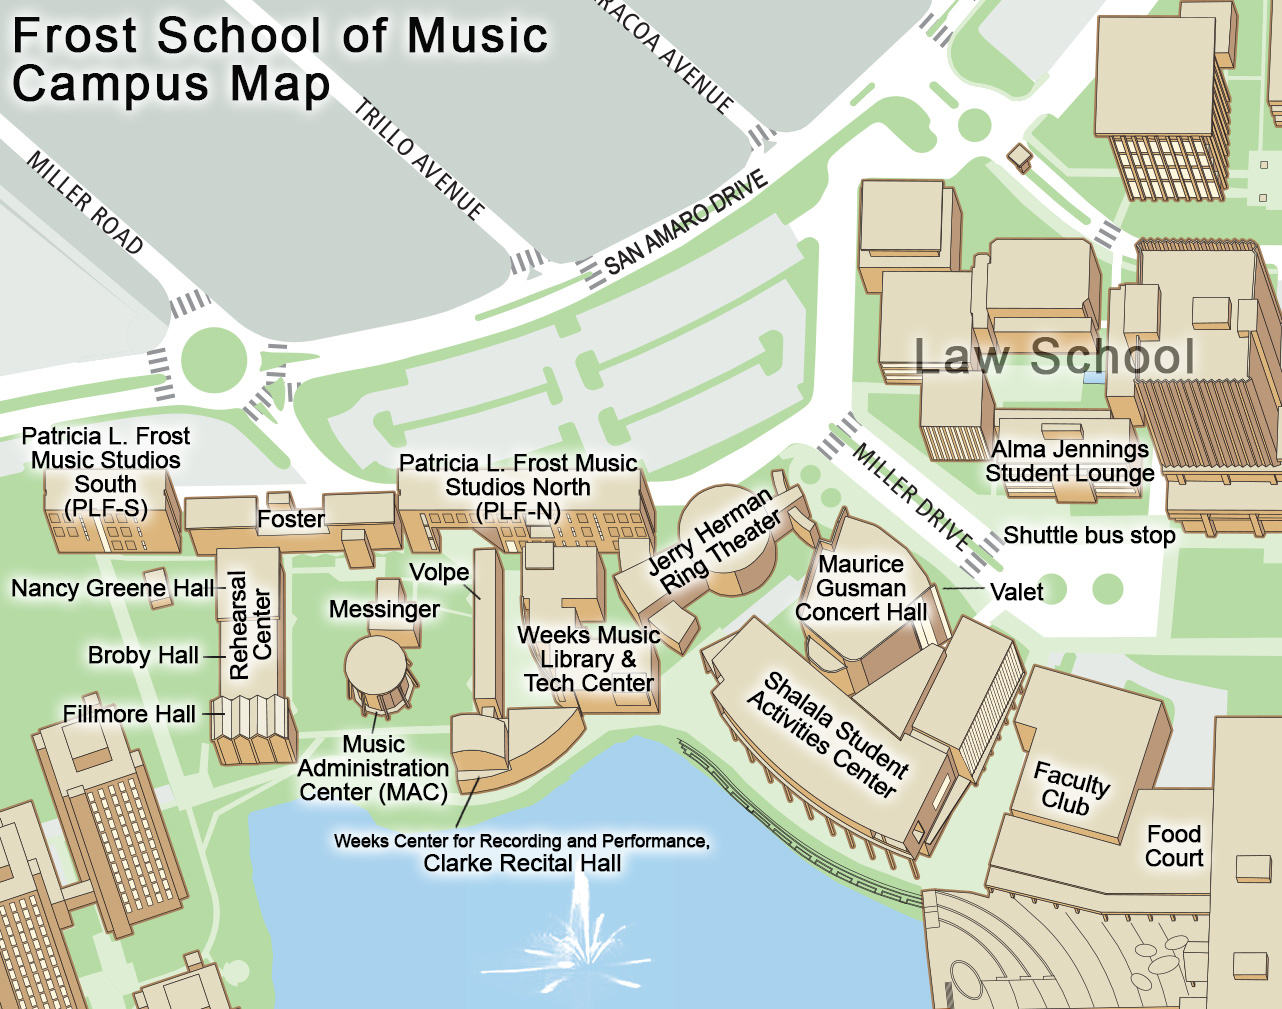 Map of the Frost School of Music Buildings